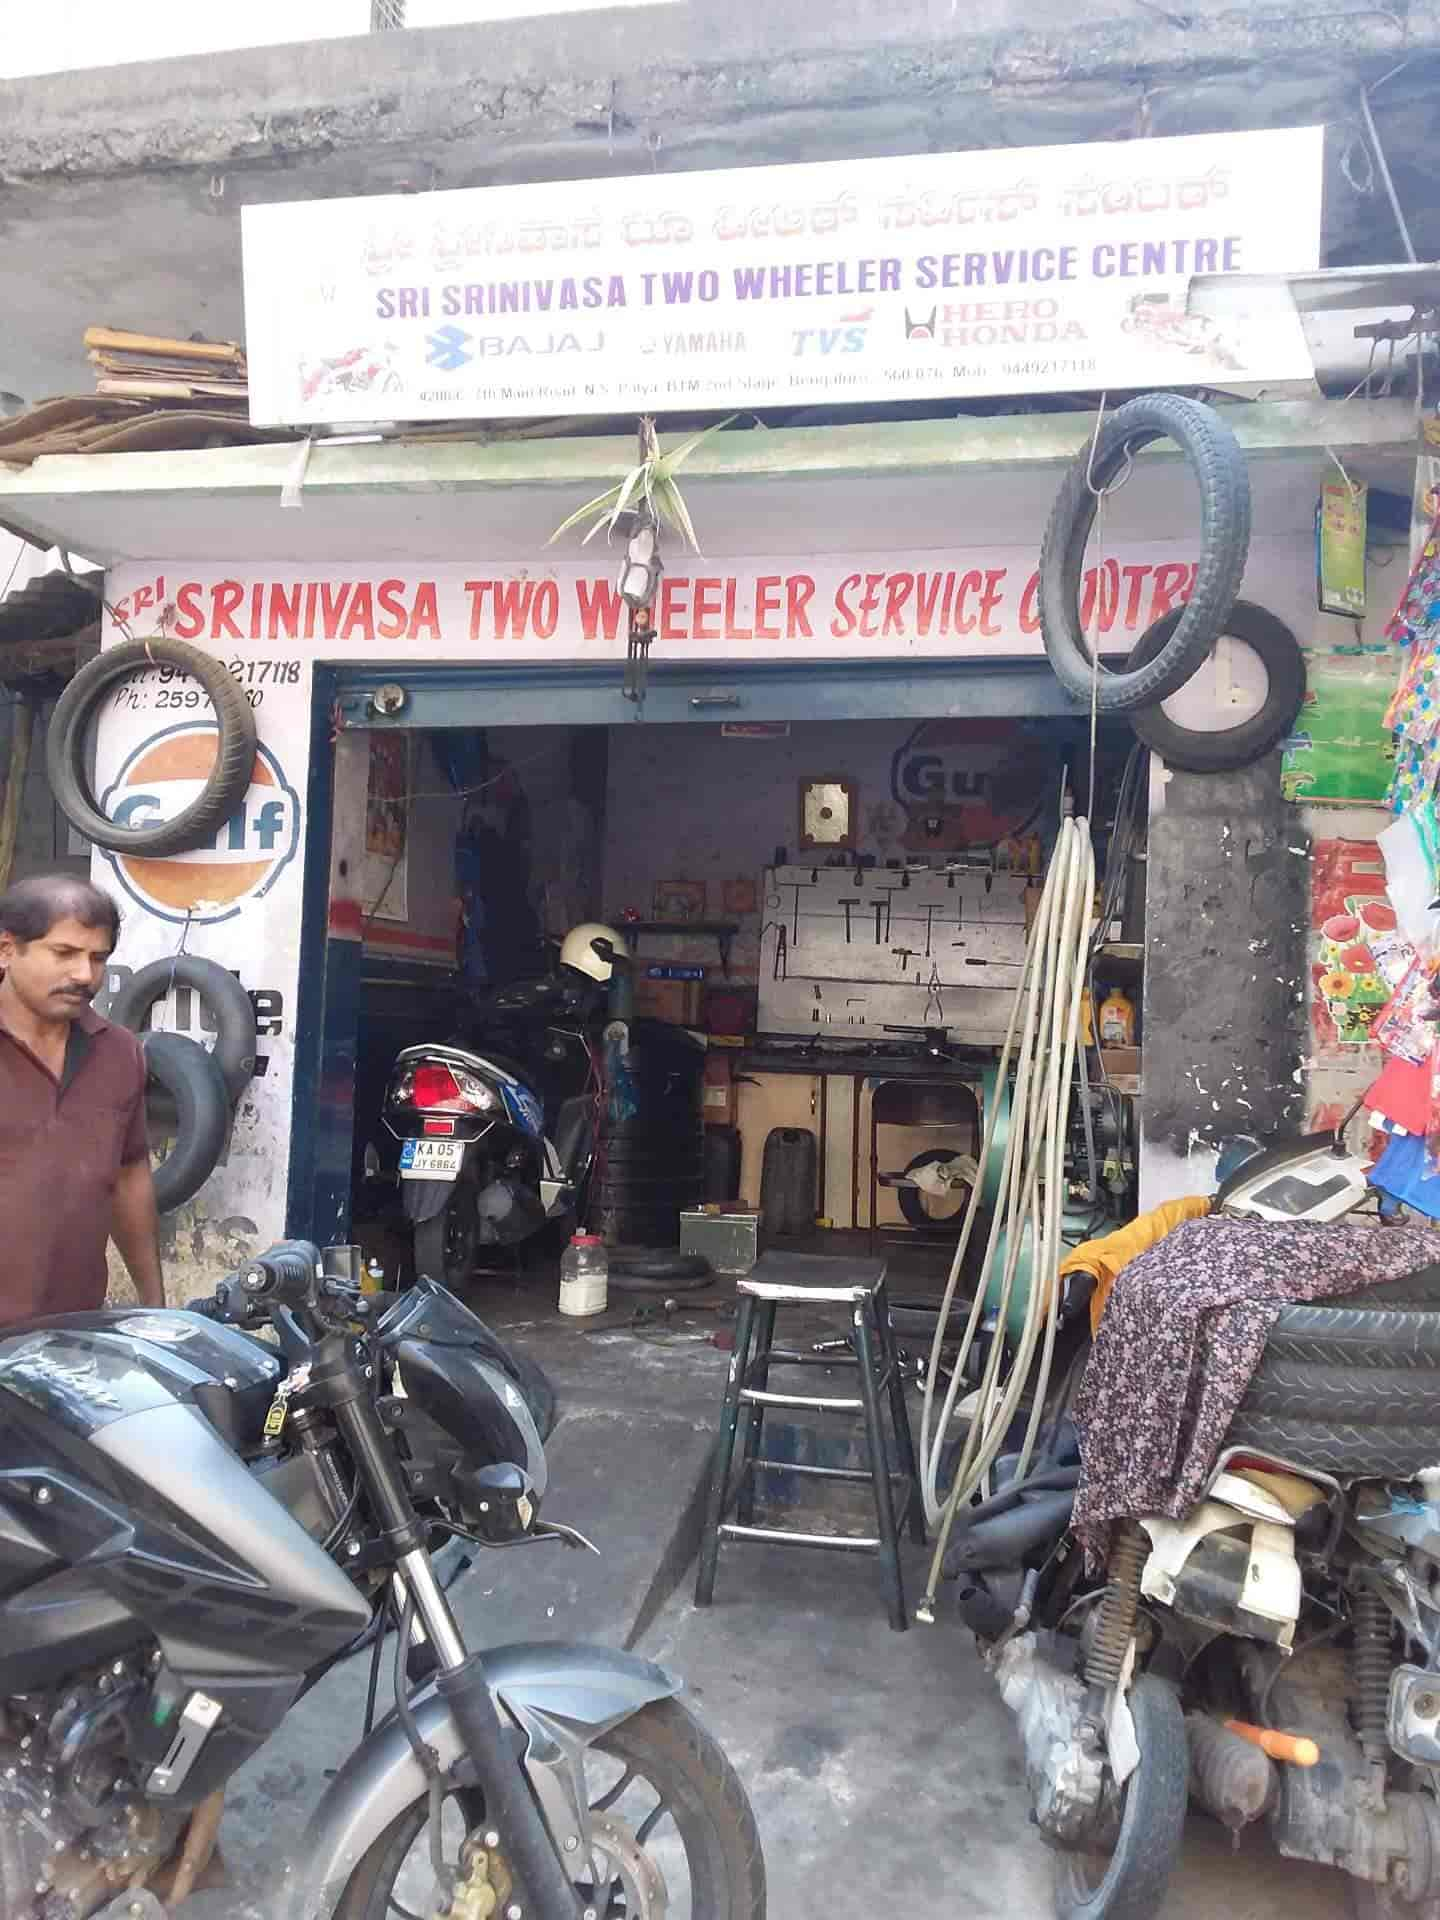 Sri Srinivas Two Wheeler Service Center Btm Layout 2nd Stage Motorcycle Repair Services In Bangalore Justdial